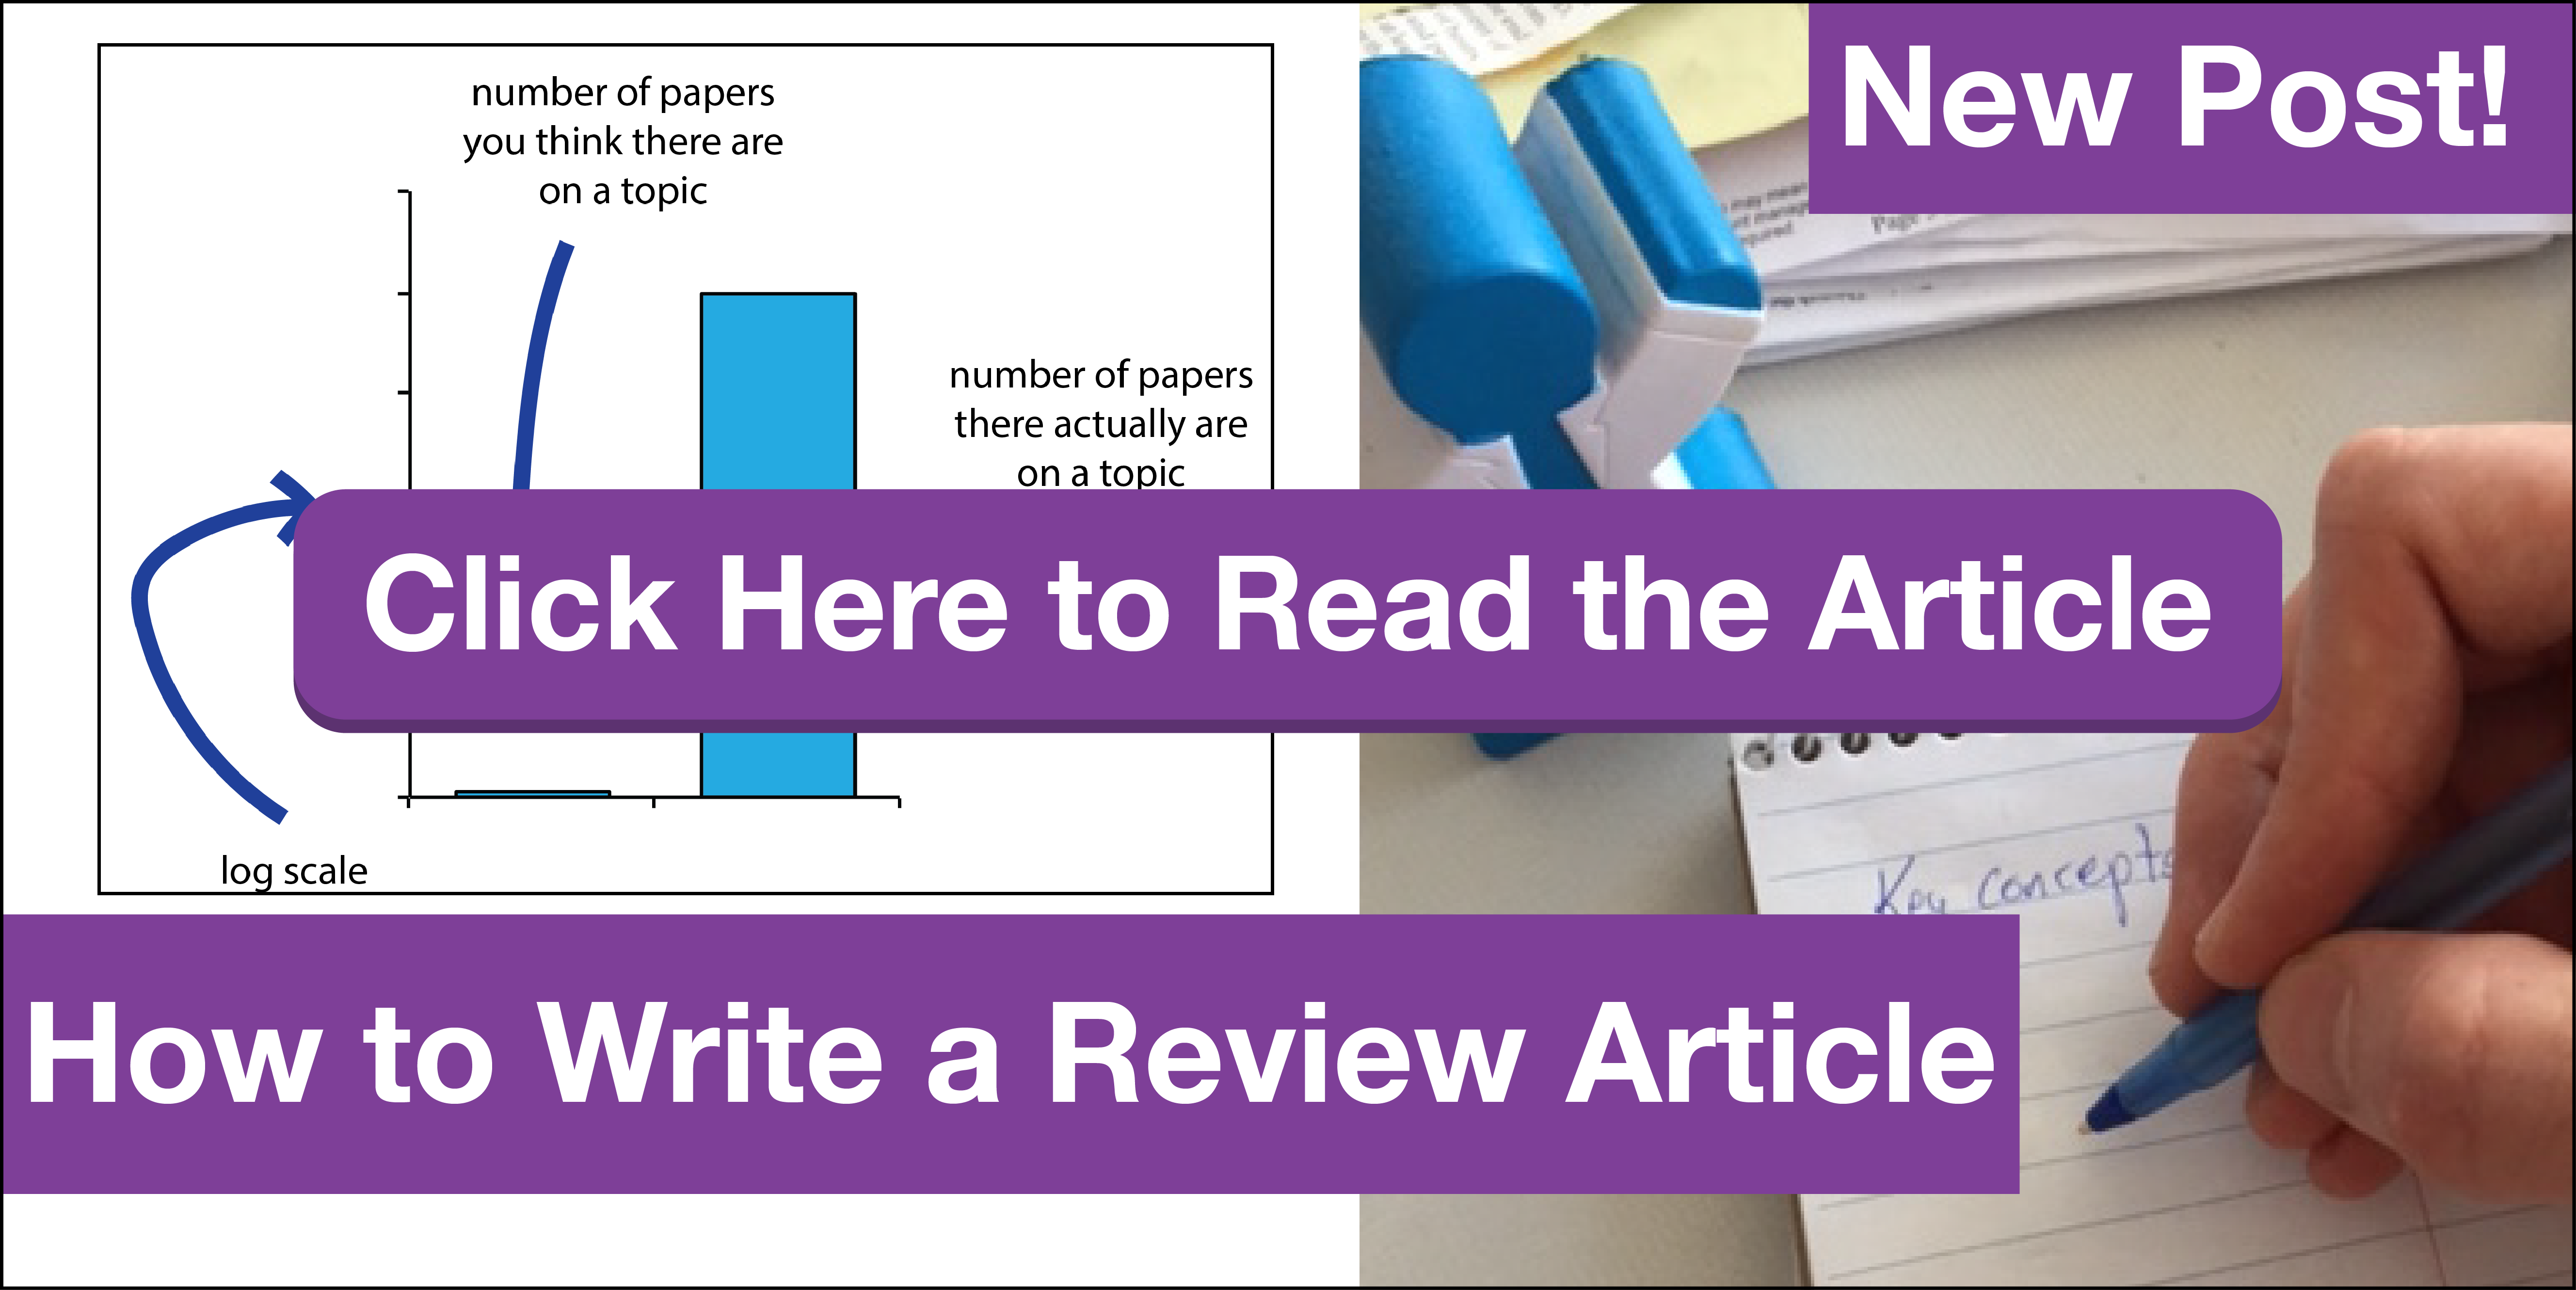 Review Article Slide-01.png